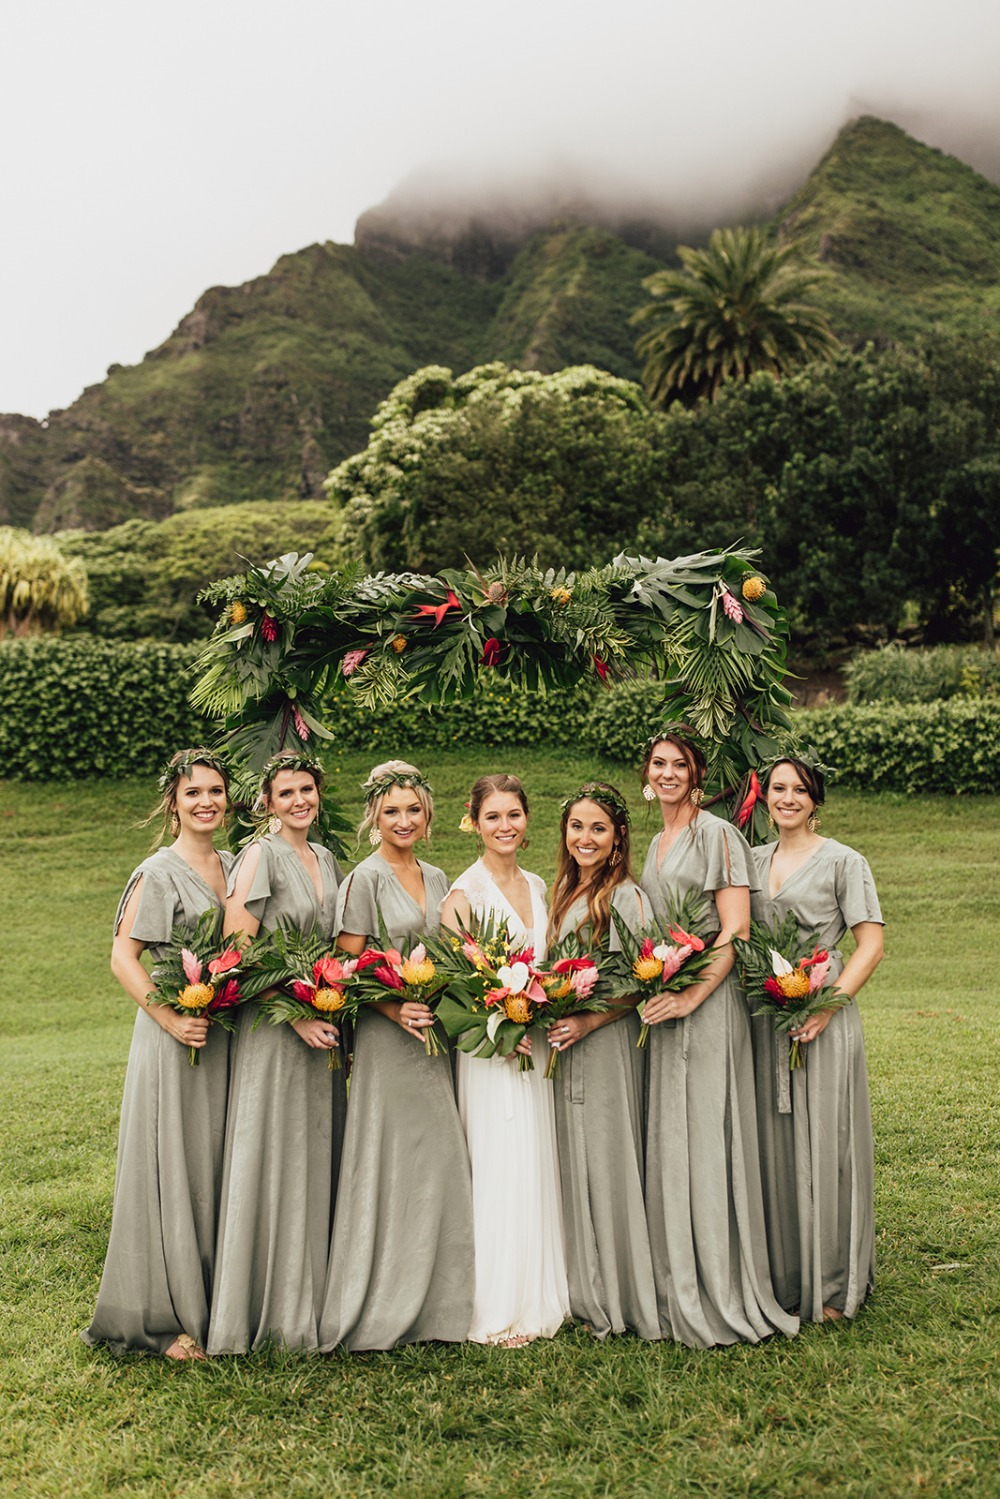 Tropical wedding at Kualoa Ranch on Oahu